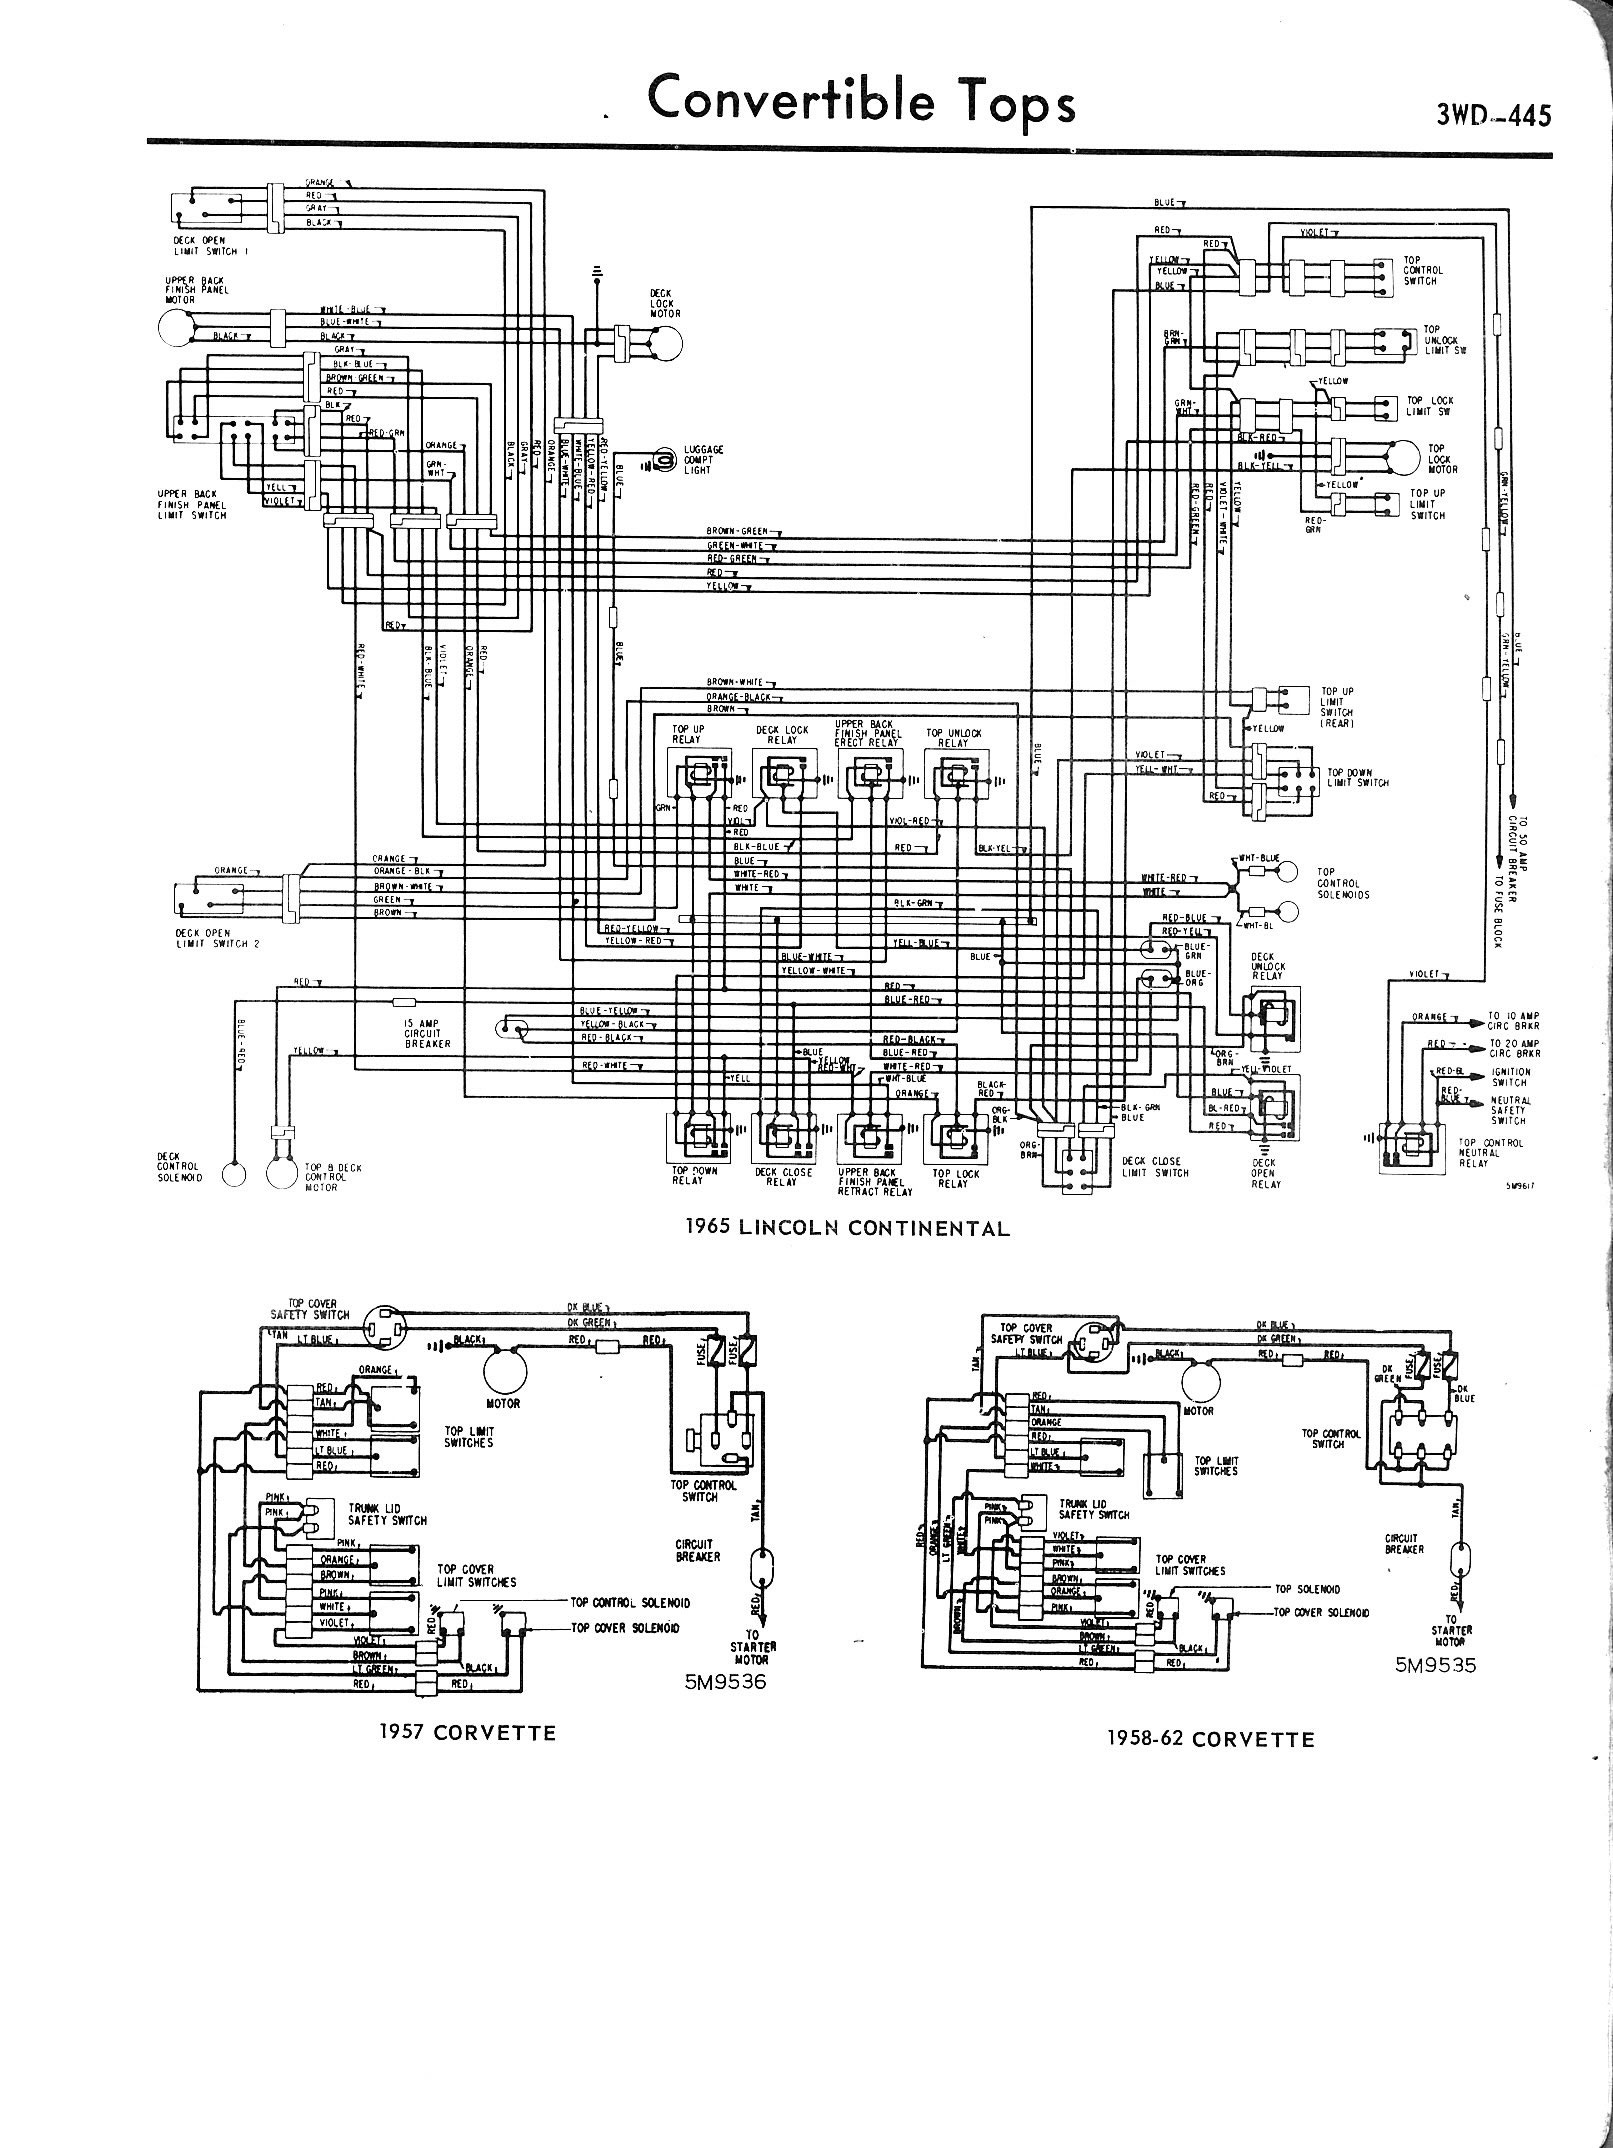 1207653 1979 F100 Need A Picture Of The 2 And 3 Plug Harness Under The Ignition Module Pics Of Prob Inside likewise 677111 Msd Tach Adapter 8920 A as well Index additionally Jeep Patriot Alternator Wiring Diagram moreover 1238382 79 Wiring Schematics. on 1979 ford ignition module wiring diagram html